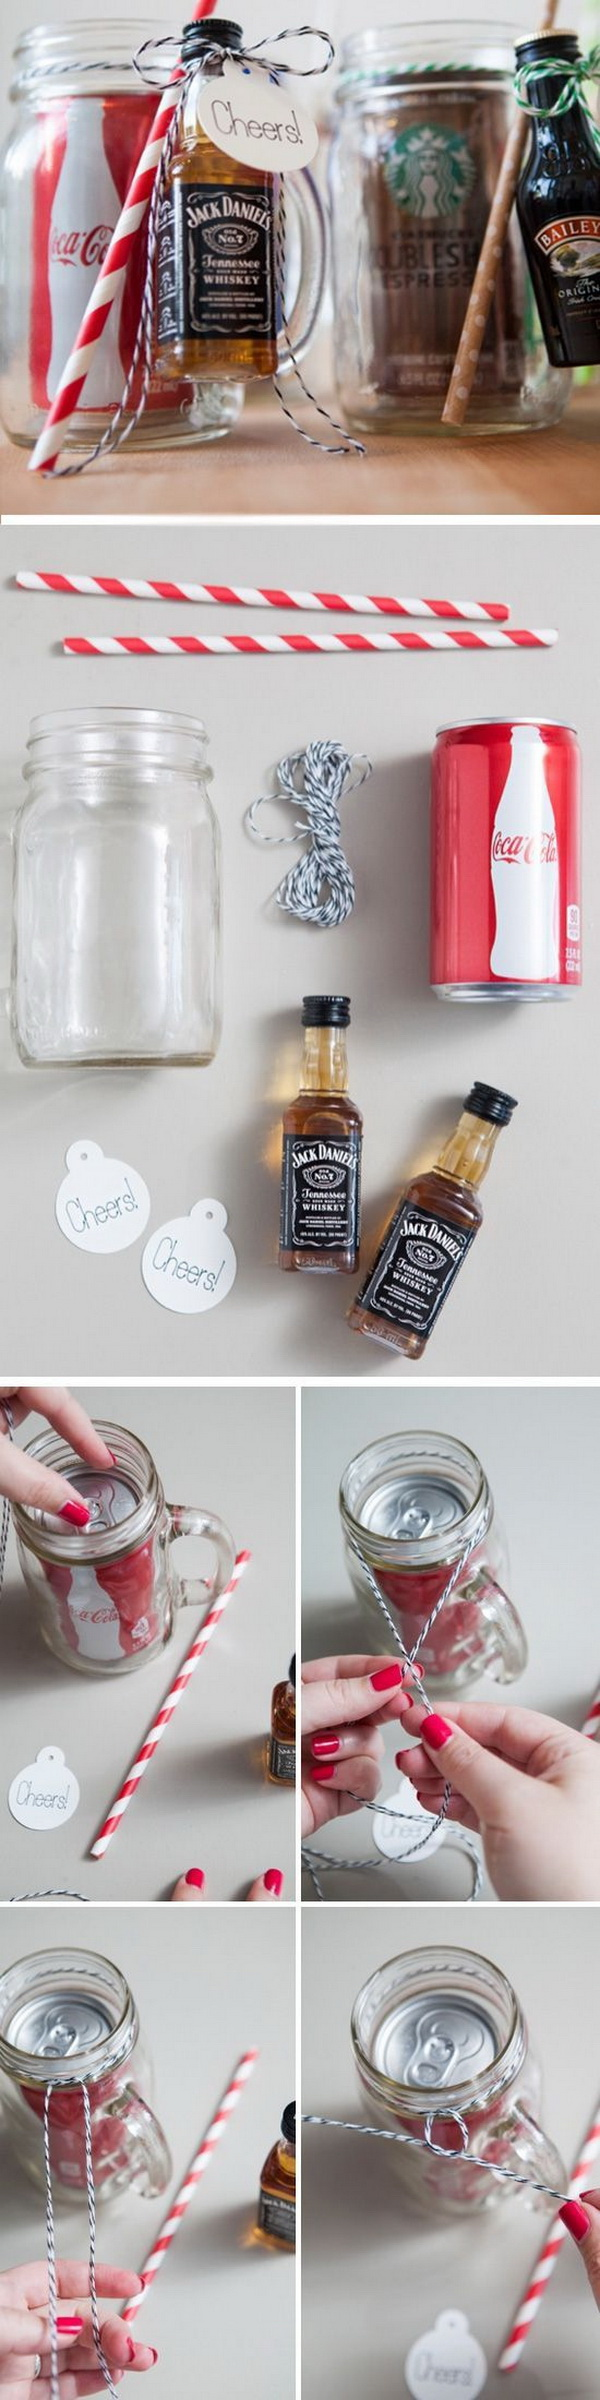 DIY Mason Jar Cocktail Gifts. Another creative and unique way to give drink gifts to men in your life, like your dad or husband, boyfriend.